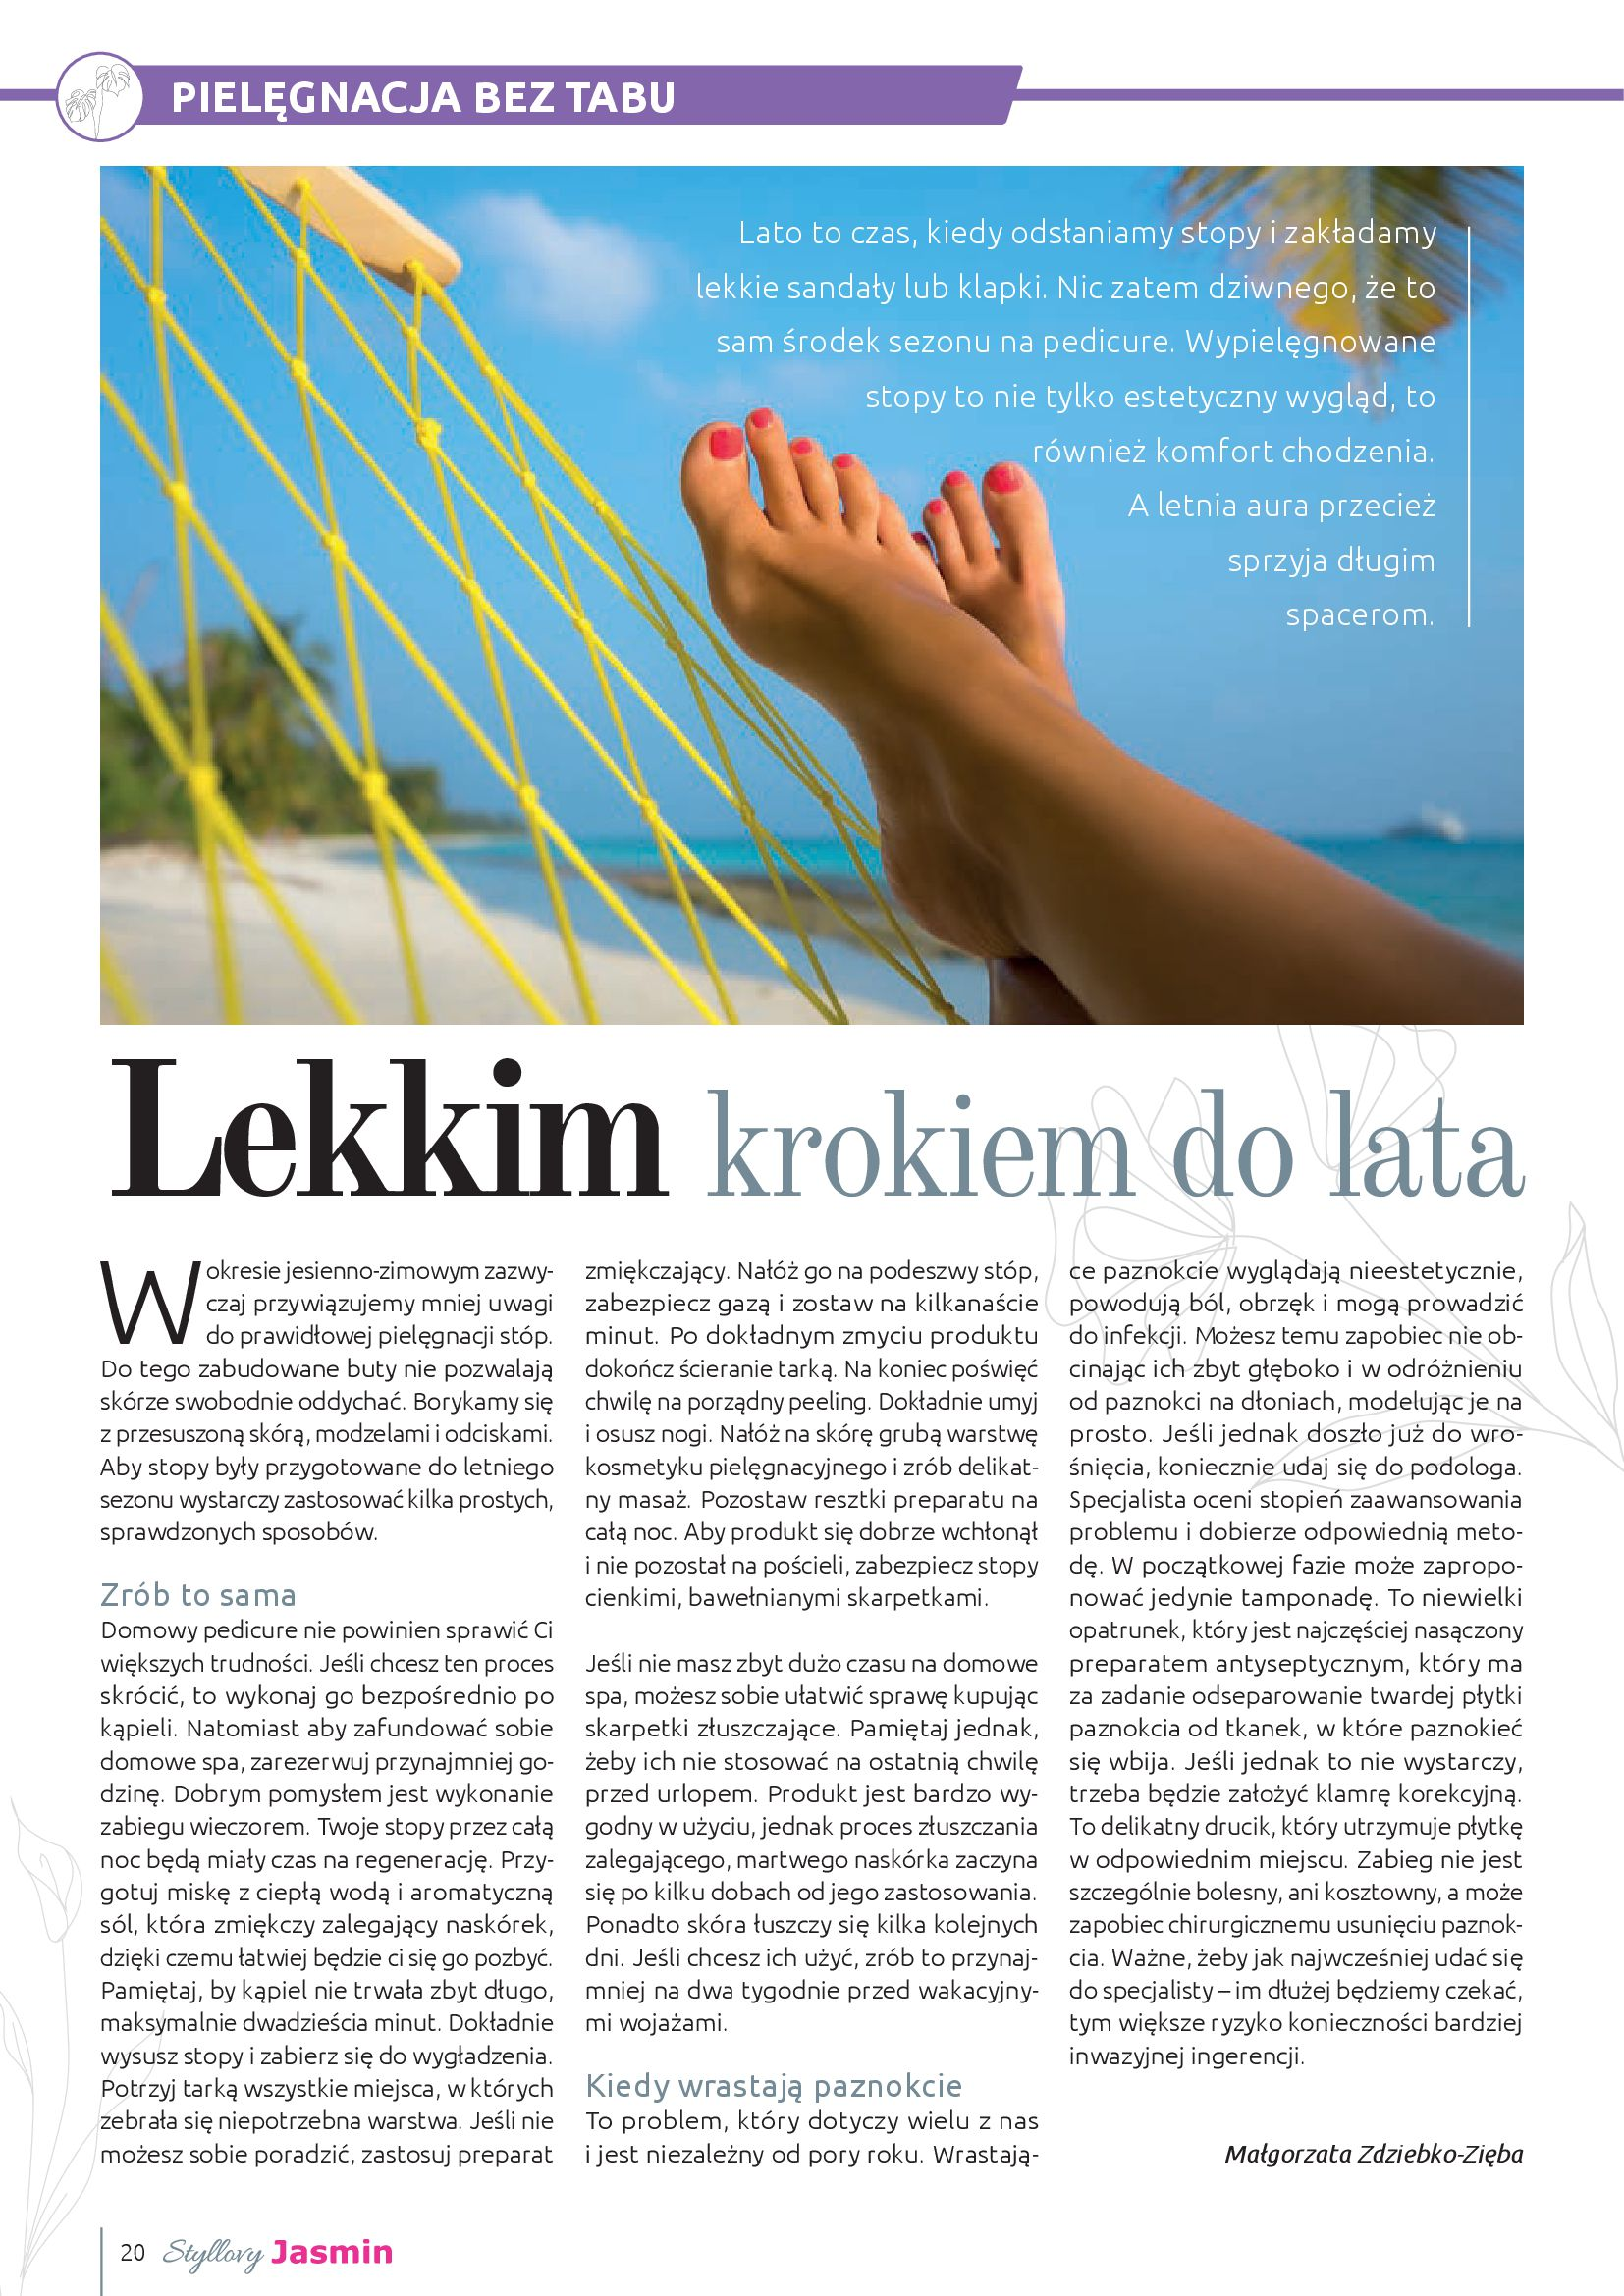 Gazetka Drogerie Jasmin: Gazetka Drogerie Jasmin 2021-08-24 page-20